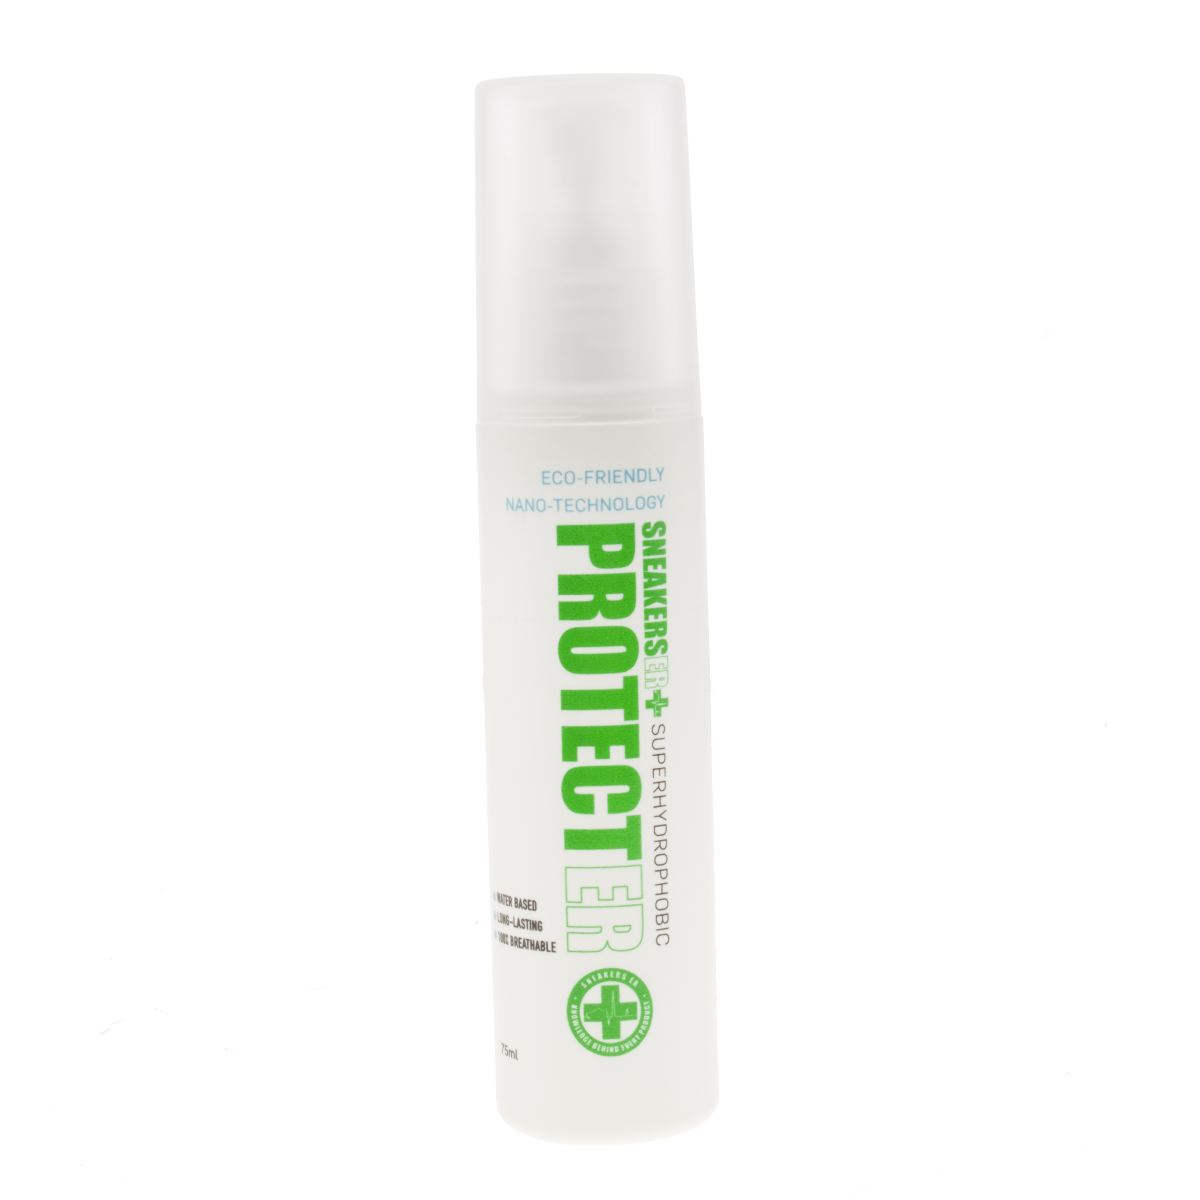 sneakerser Sneakerser White Superhydrophobic Protector Shoe Care